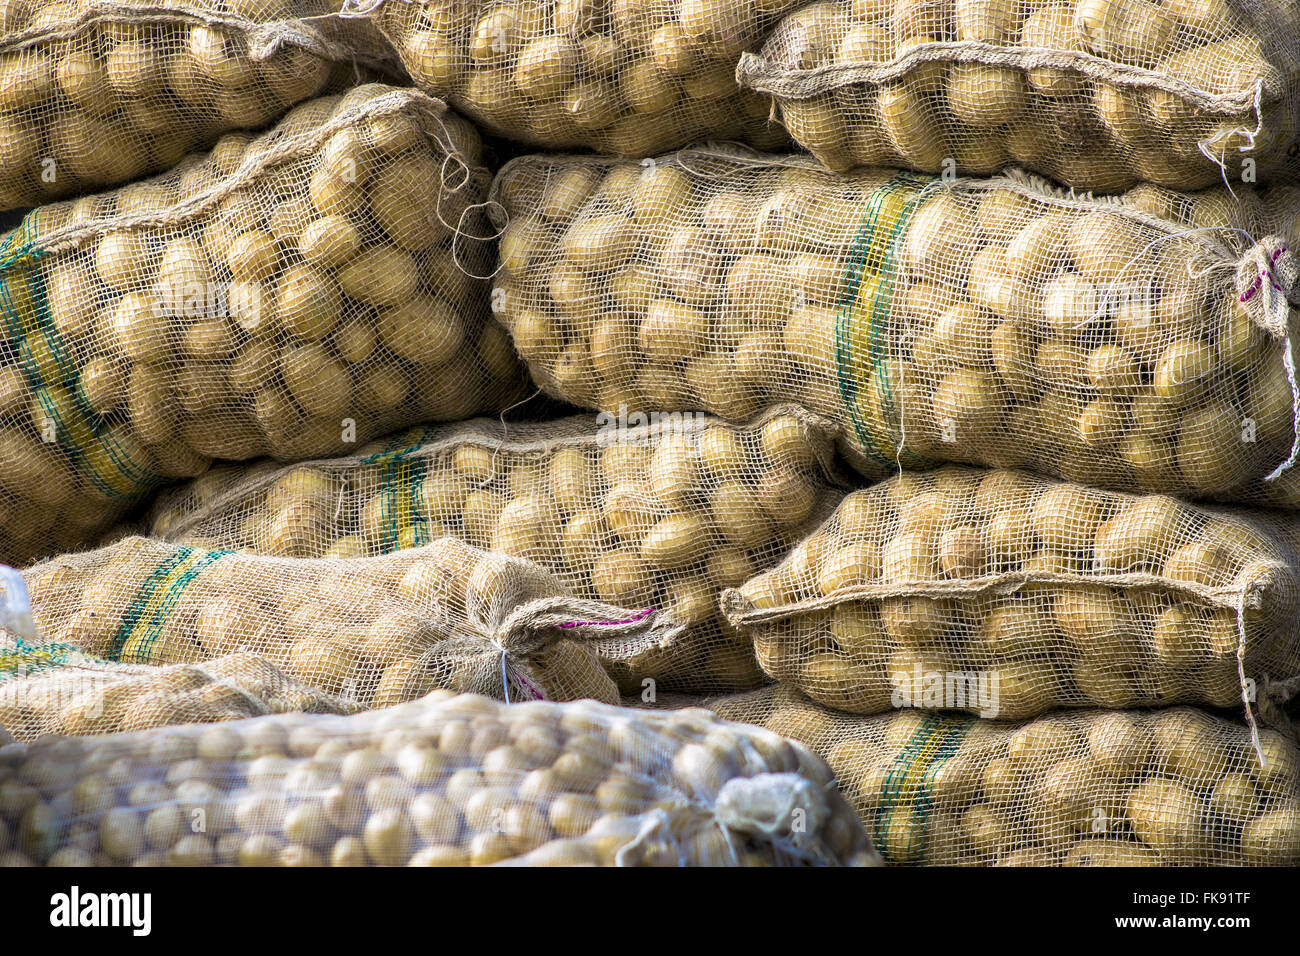 Potato sacks in CEAGESP - General Warehouses of Sao Paulo - Stock Image